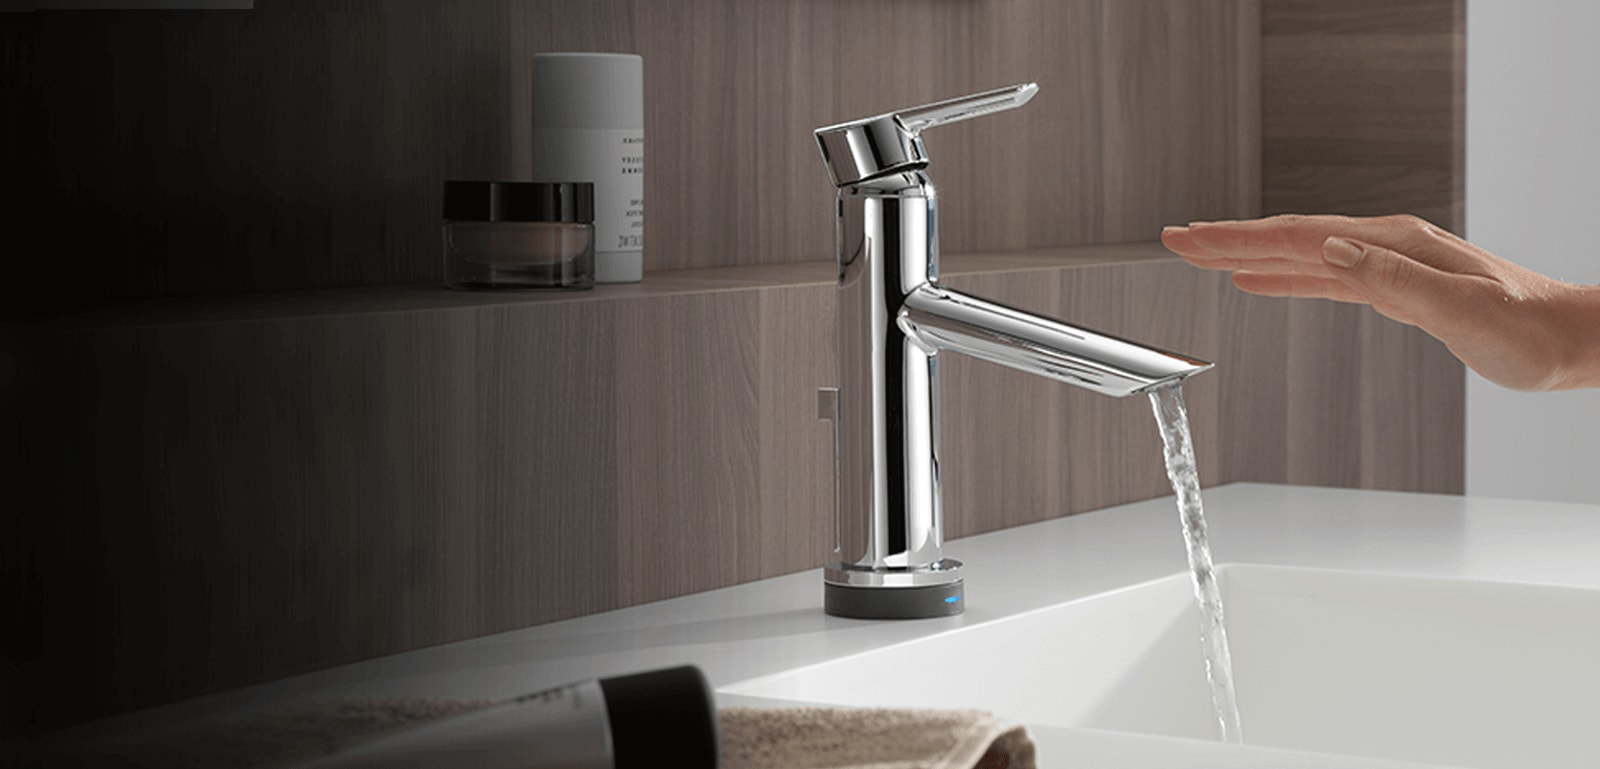 touch sensitive kitchen faucet best touchless kitchen faucets reviews amp buying guide 2018 22387